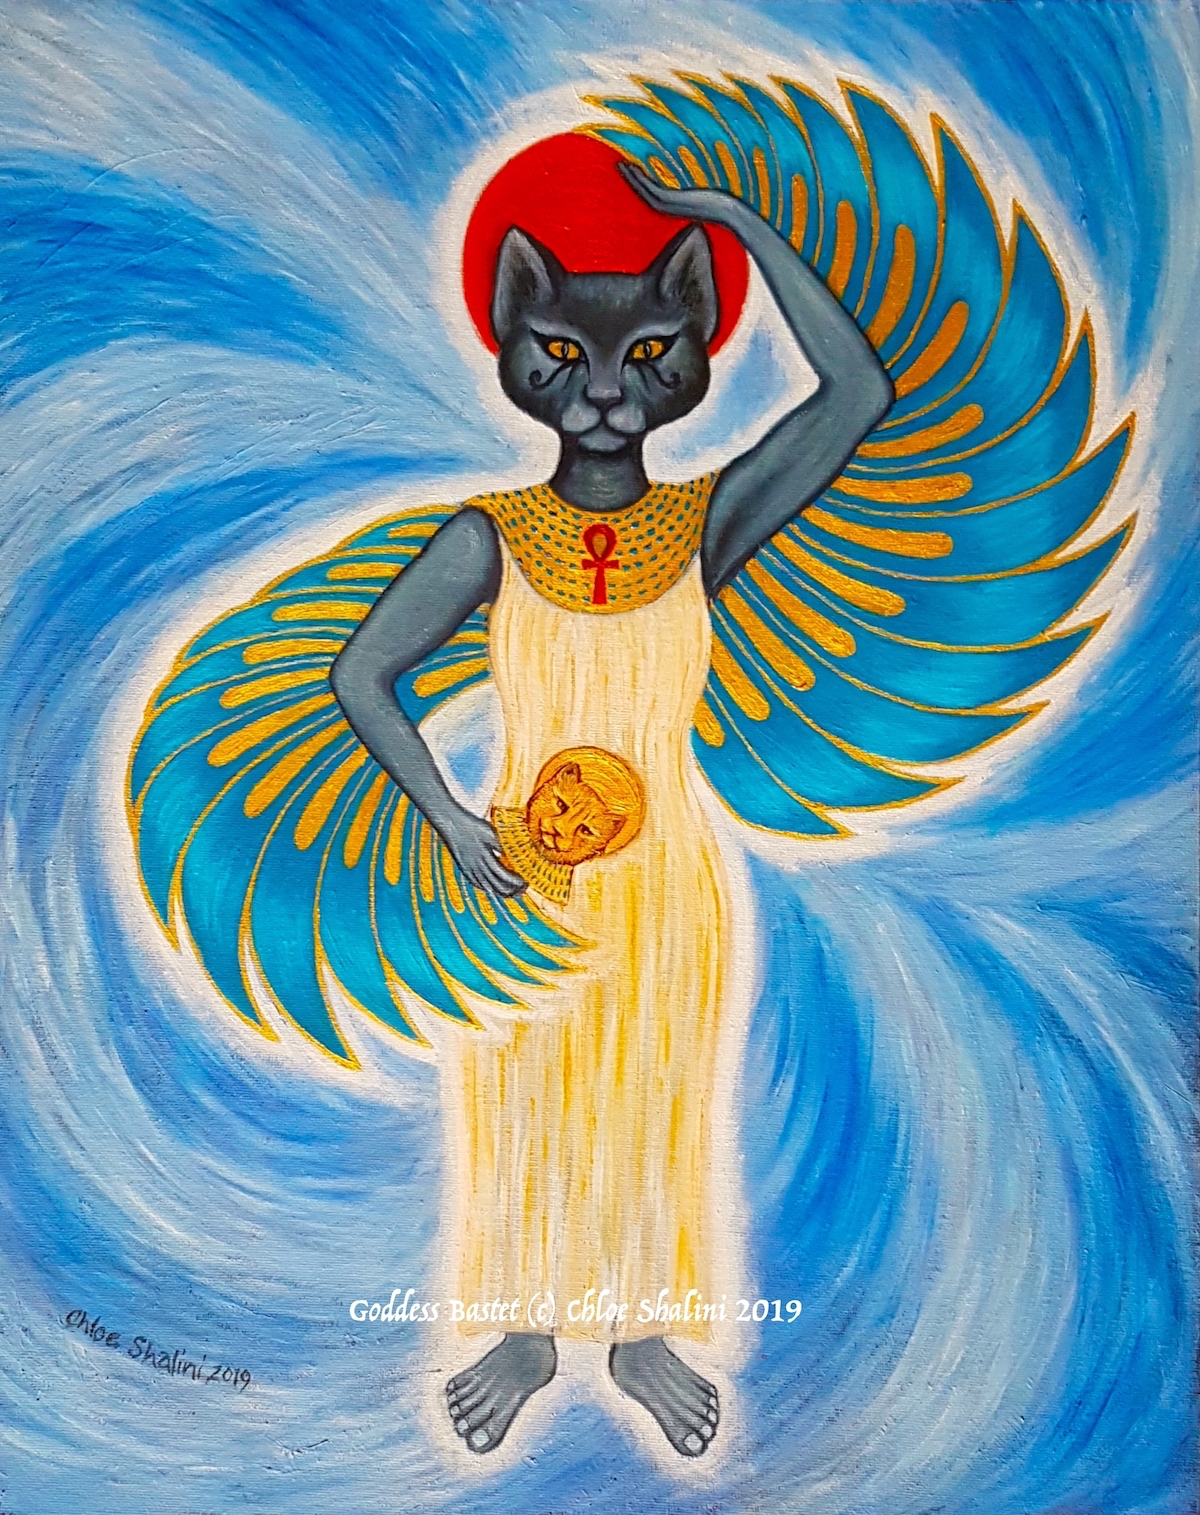 Cat Goddess Bastet/Bast